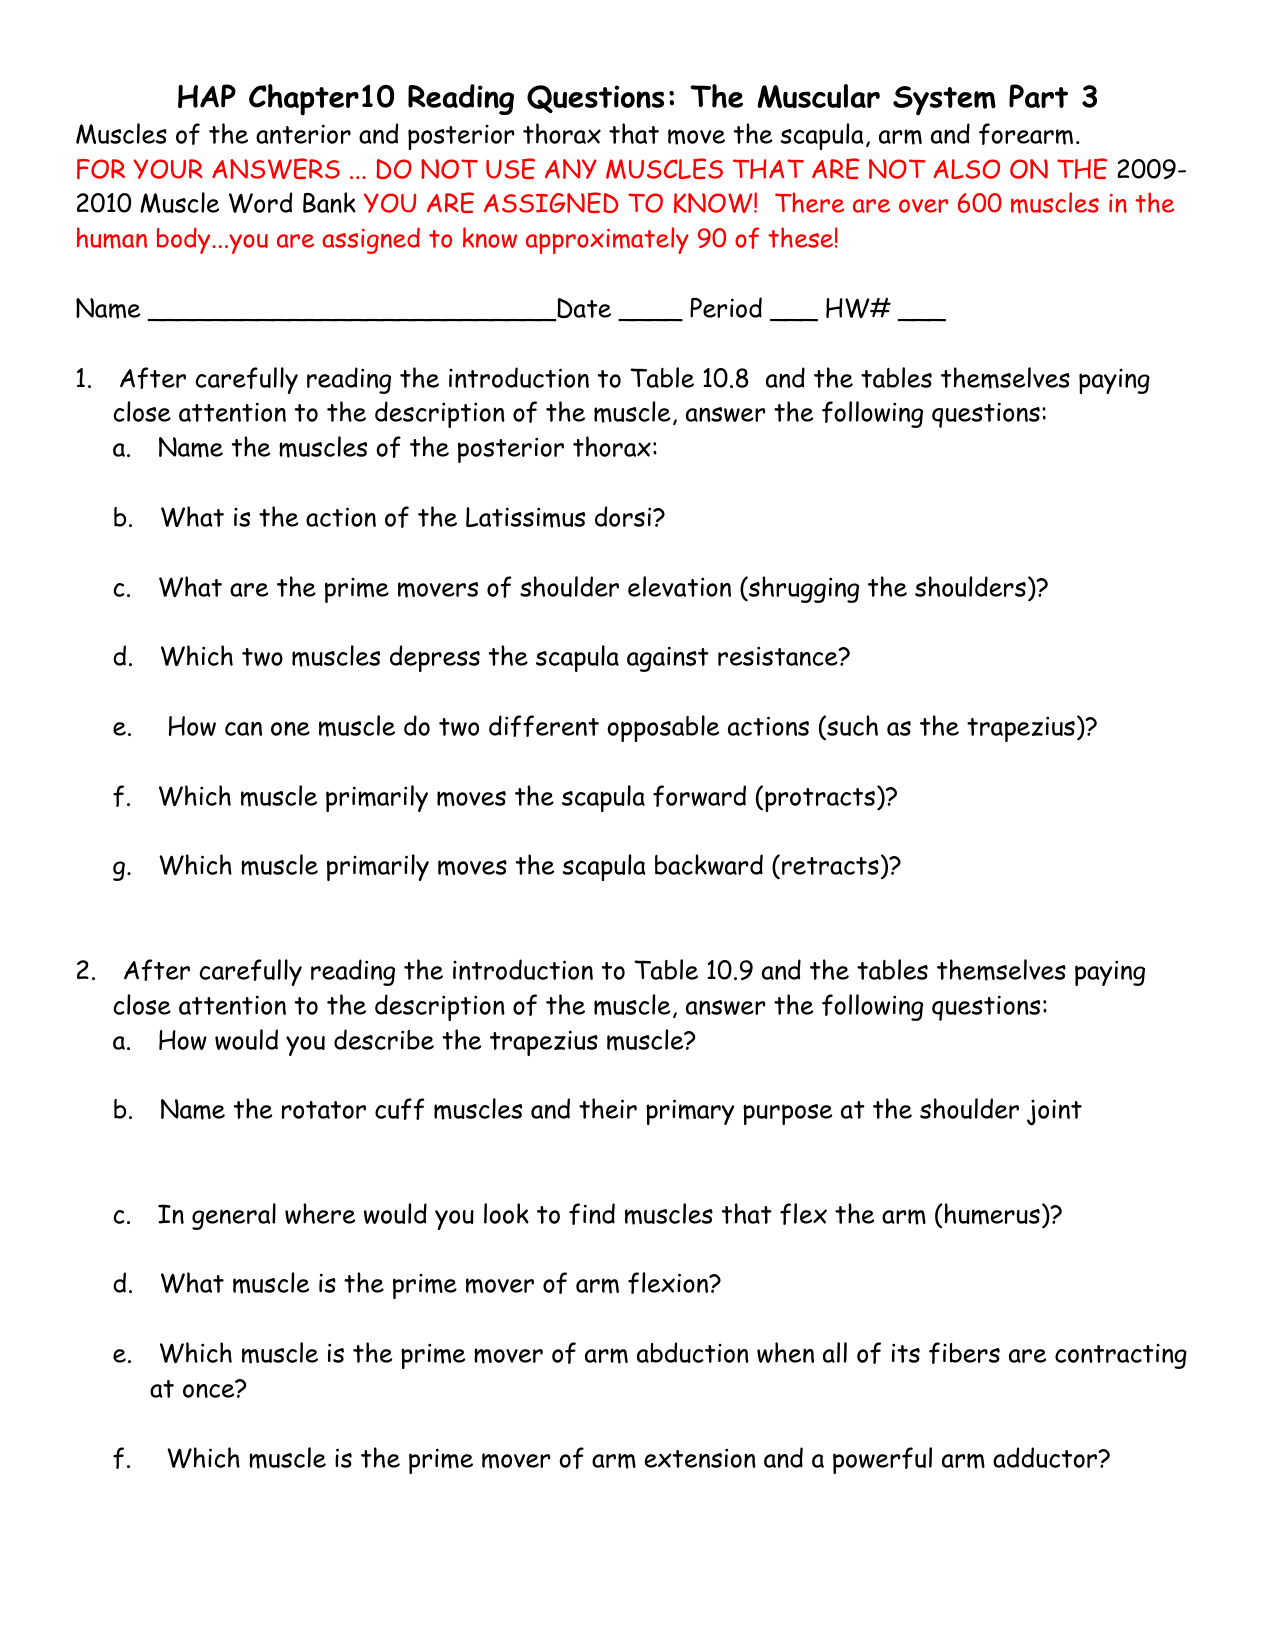 HAP Chapter10 Reading Questions The Muscular System Part 3